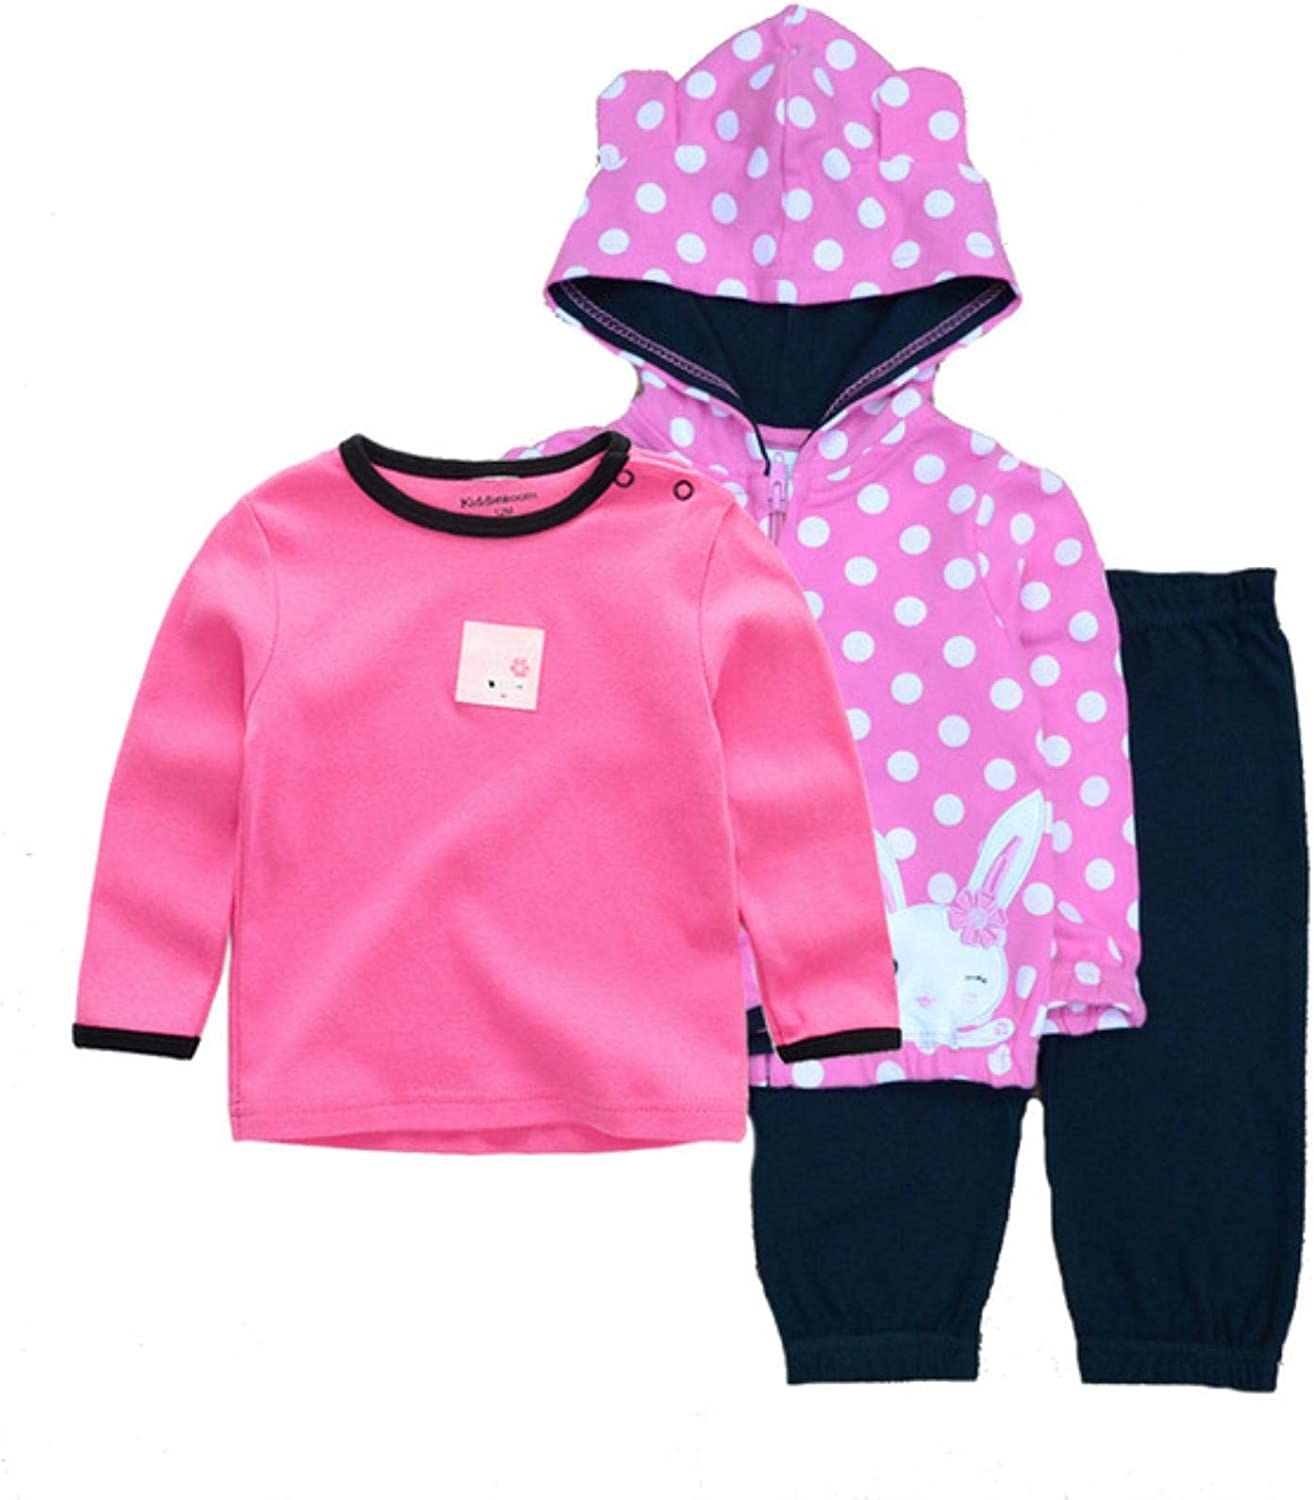 2020 Winter Baby Clothing Set 3PCS Hoodie+T-Shirt+Pants Ropa Bebe 12-24months O-Neck Cotton Infant Costume Baby Boy Girl Clothes